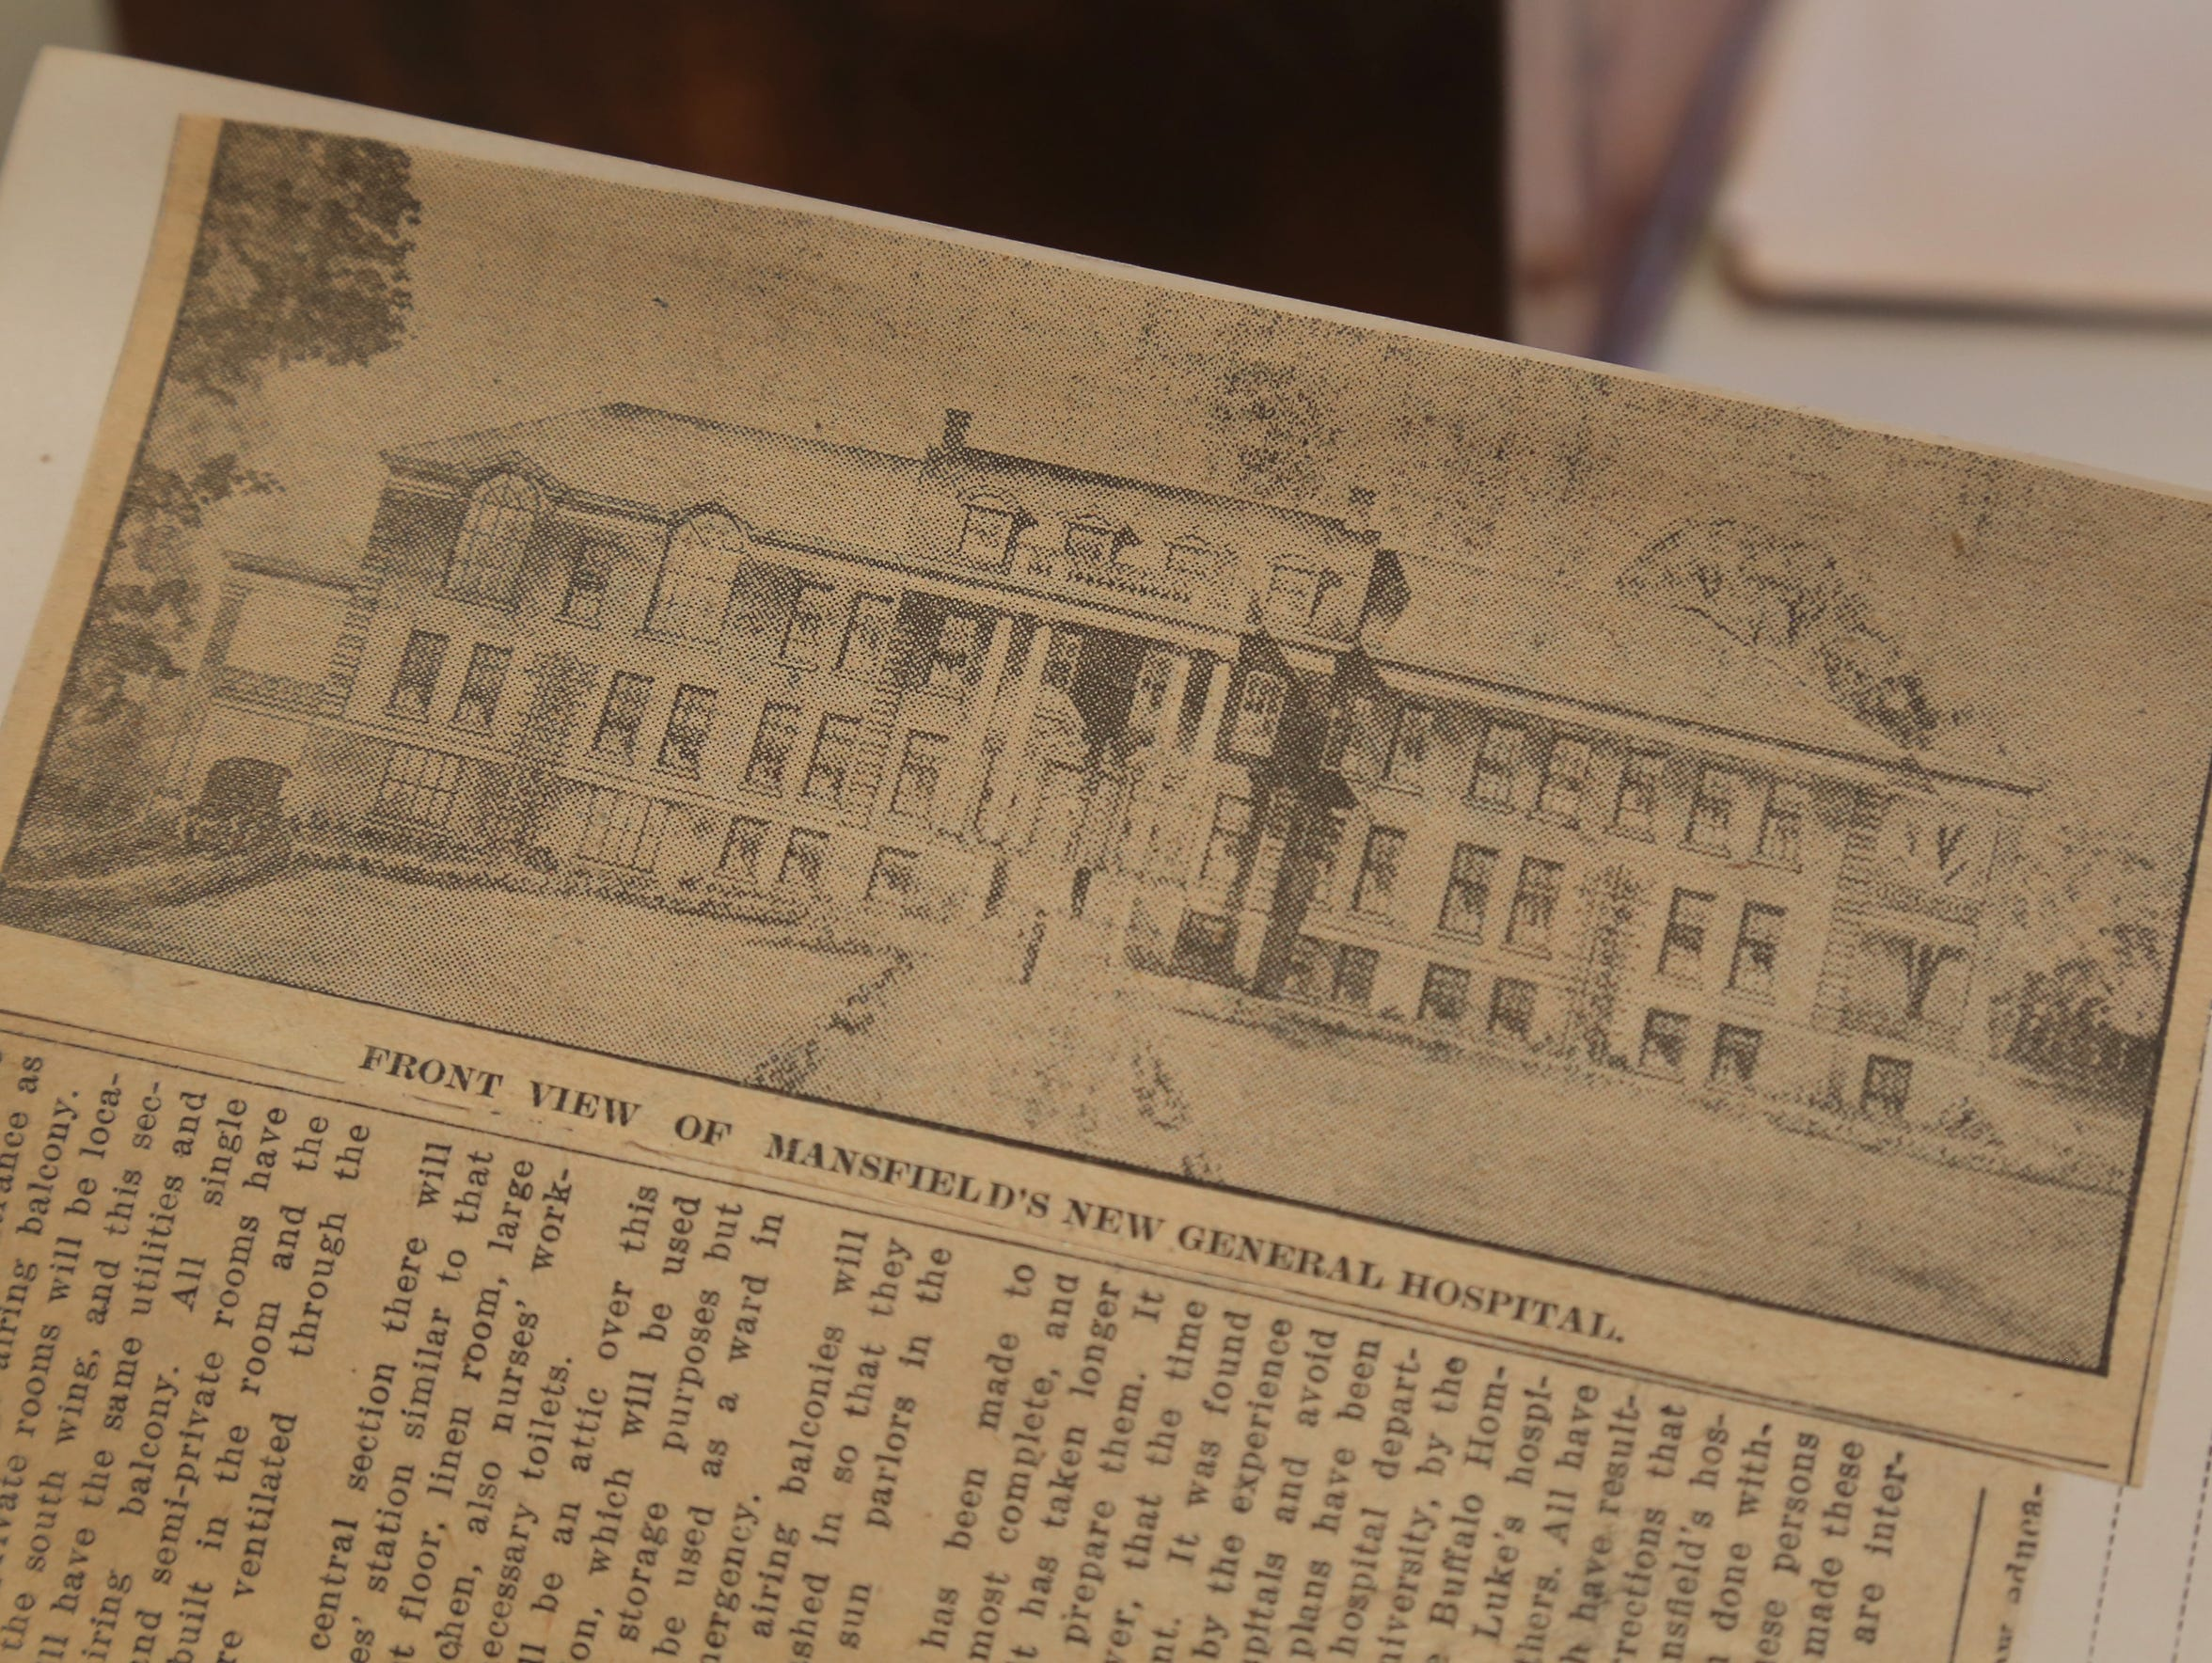 A newspaper clipping shows a drawing of Mansfield General